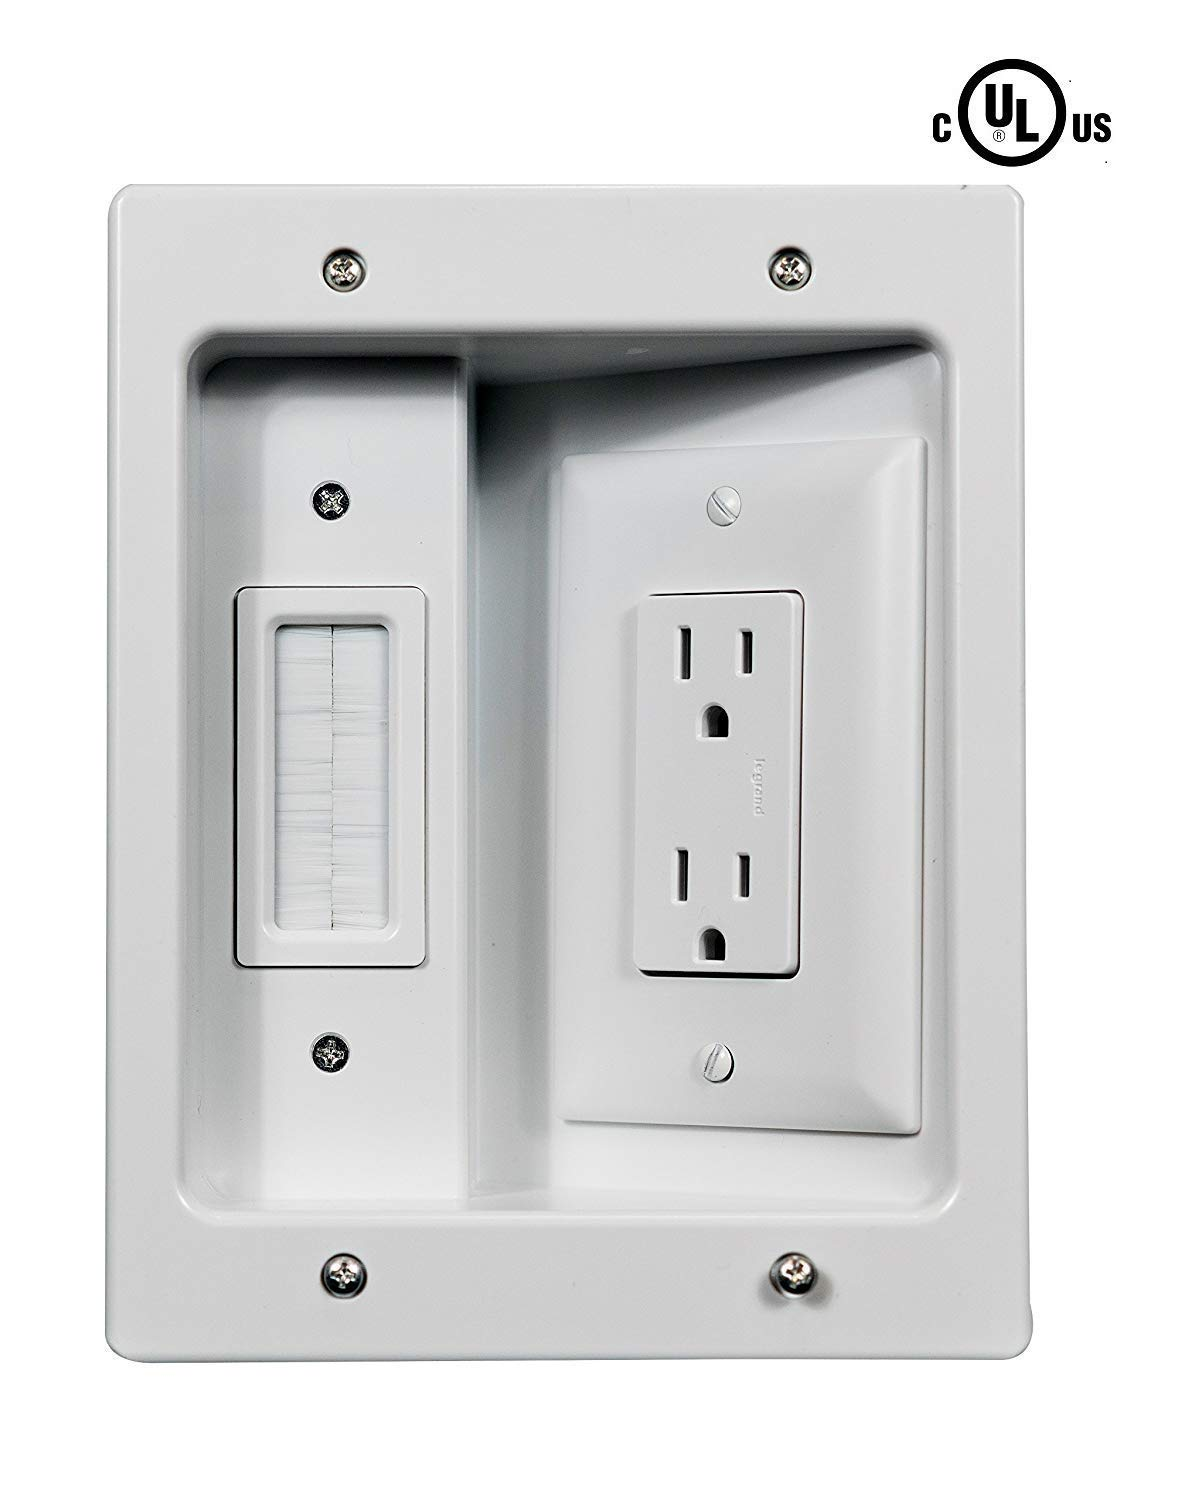 Legrand OnQ HT2102WHV1 Flat-Panel in-Wall Cable Management Connection Kit for TV Installation, White by Legrand-On-Q